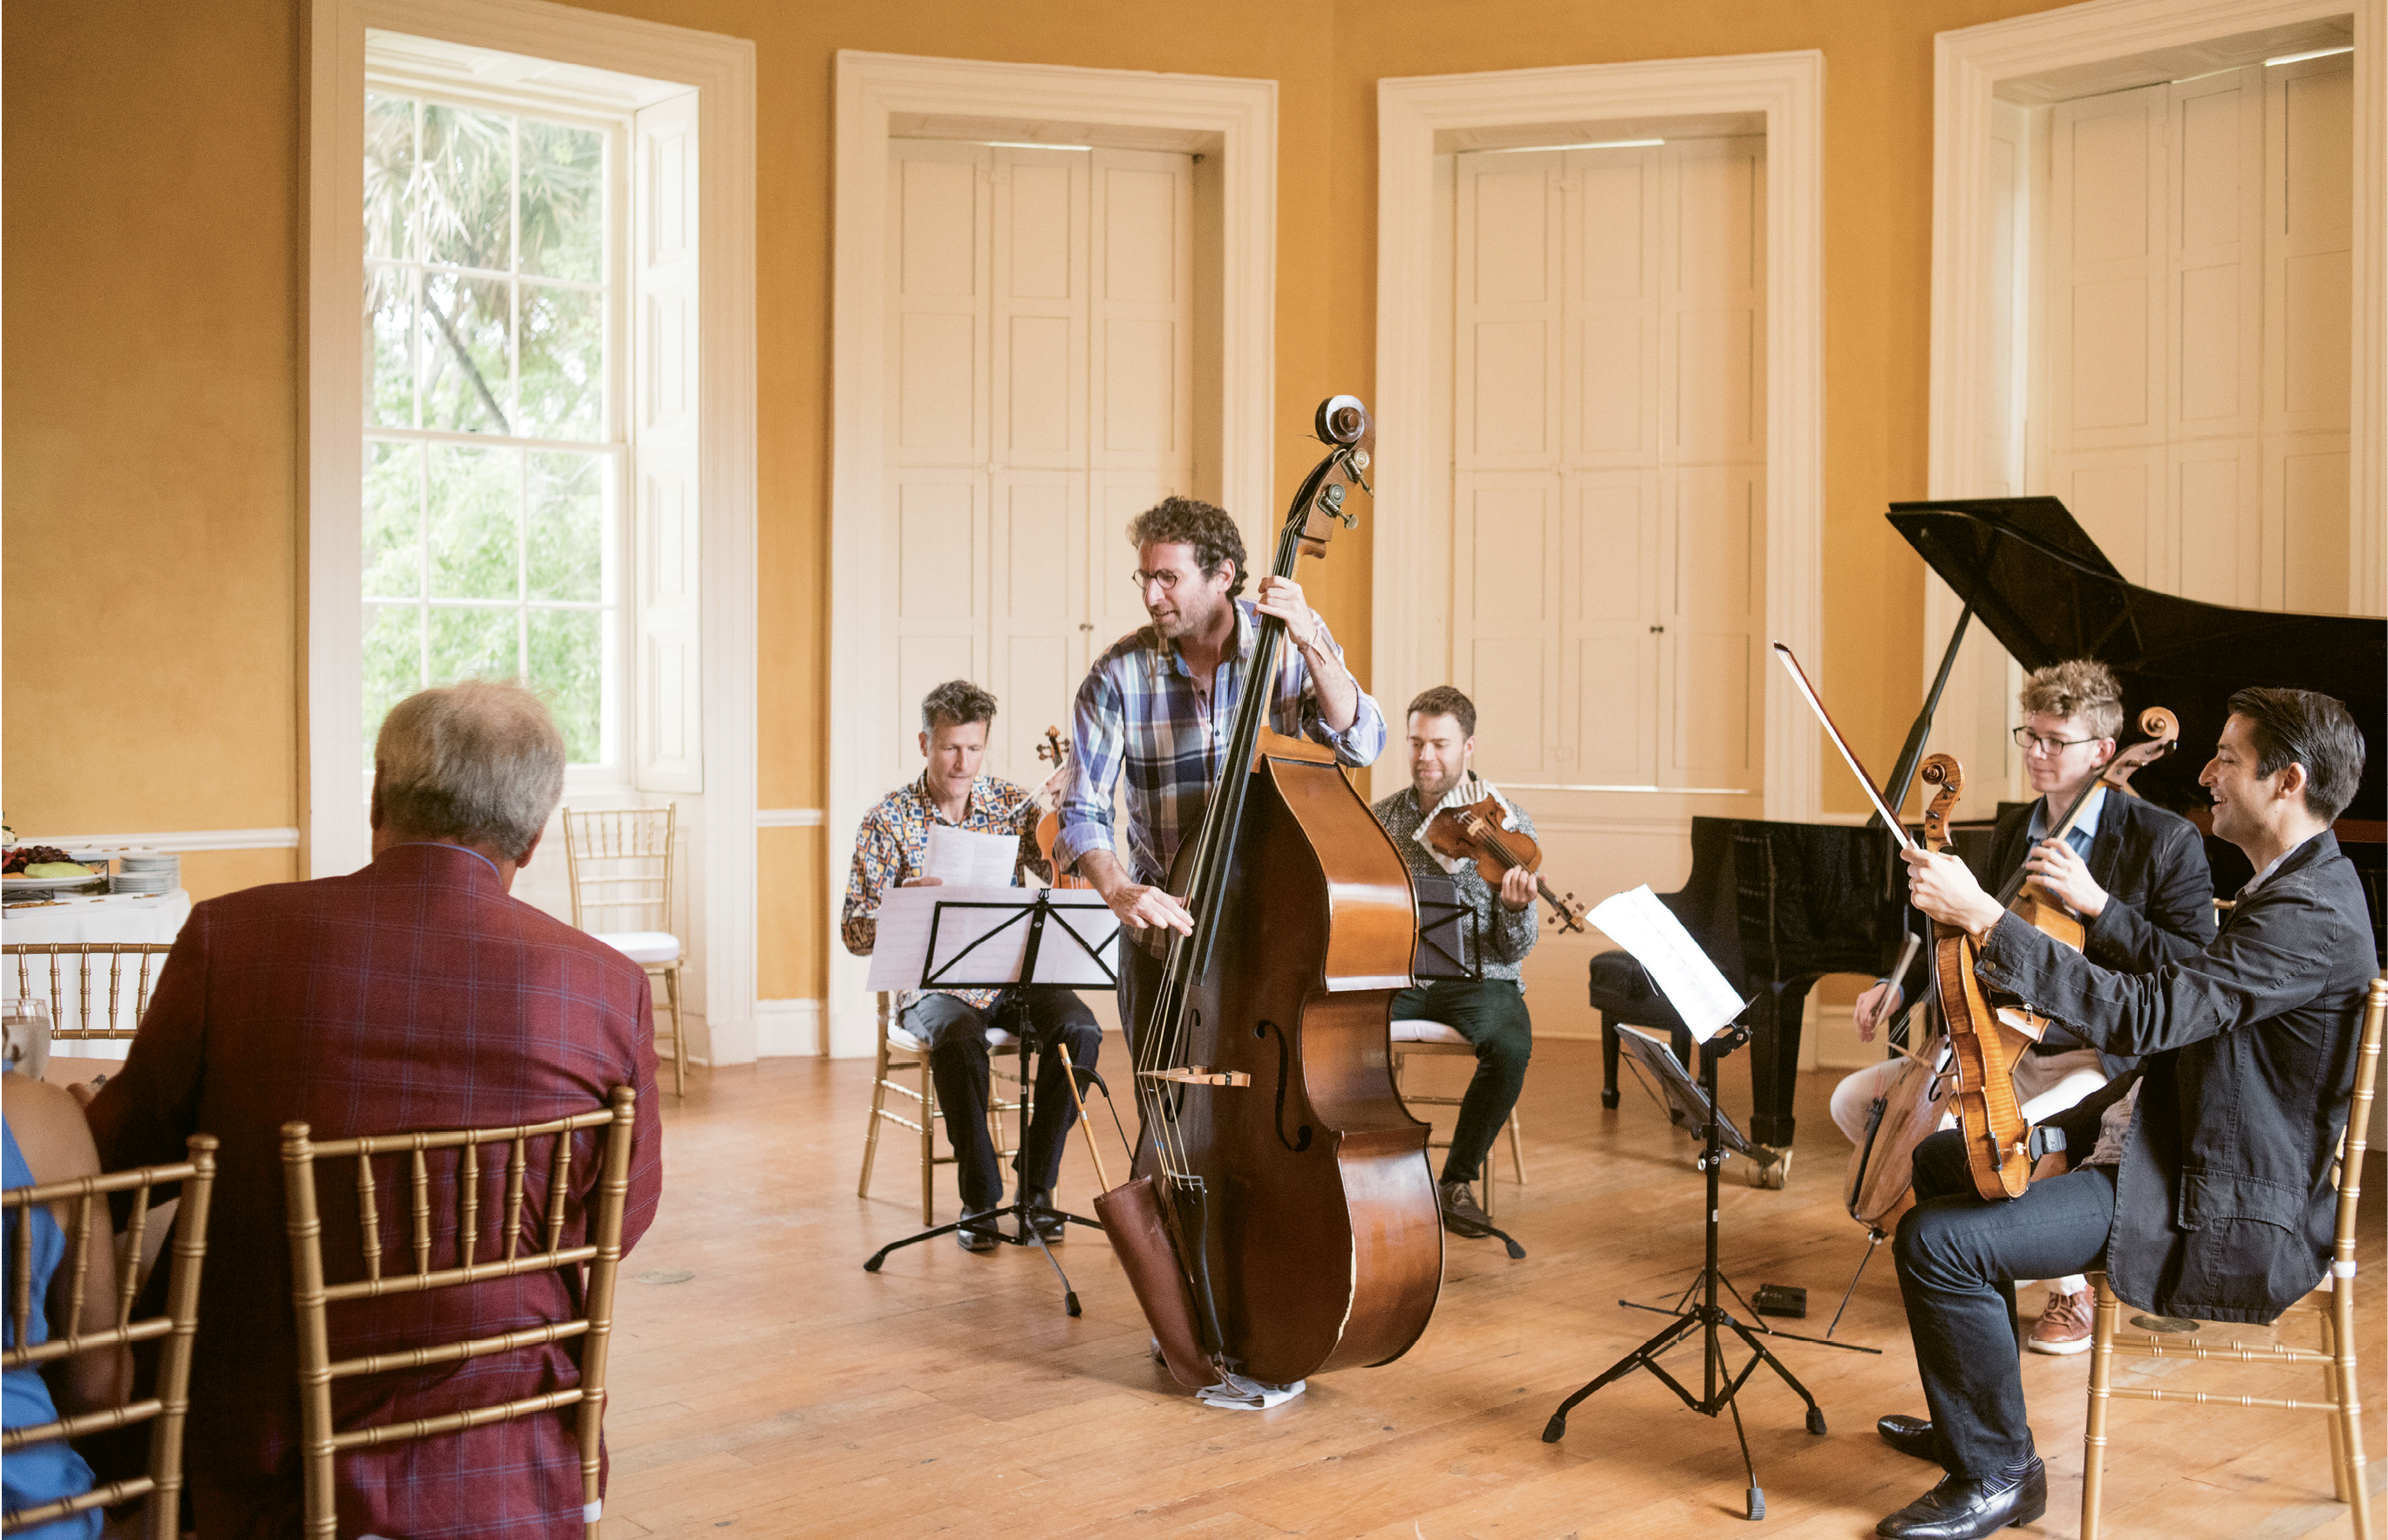 5 p/m. - Fan Club: As the guests start to arrive, Balliett takes the ensemble through one of his compositions.